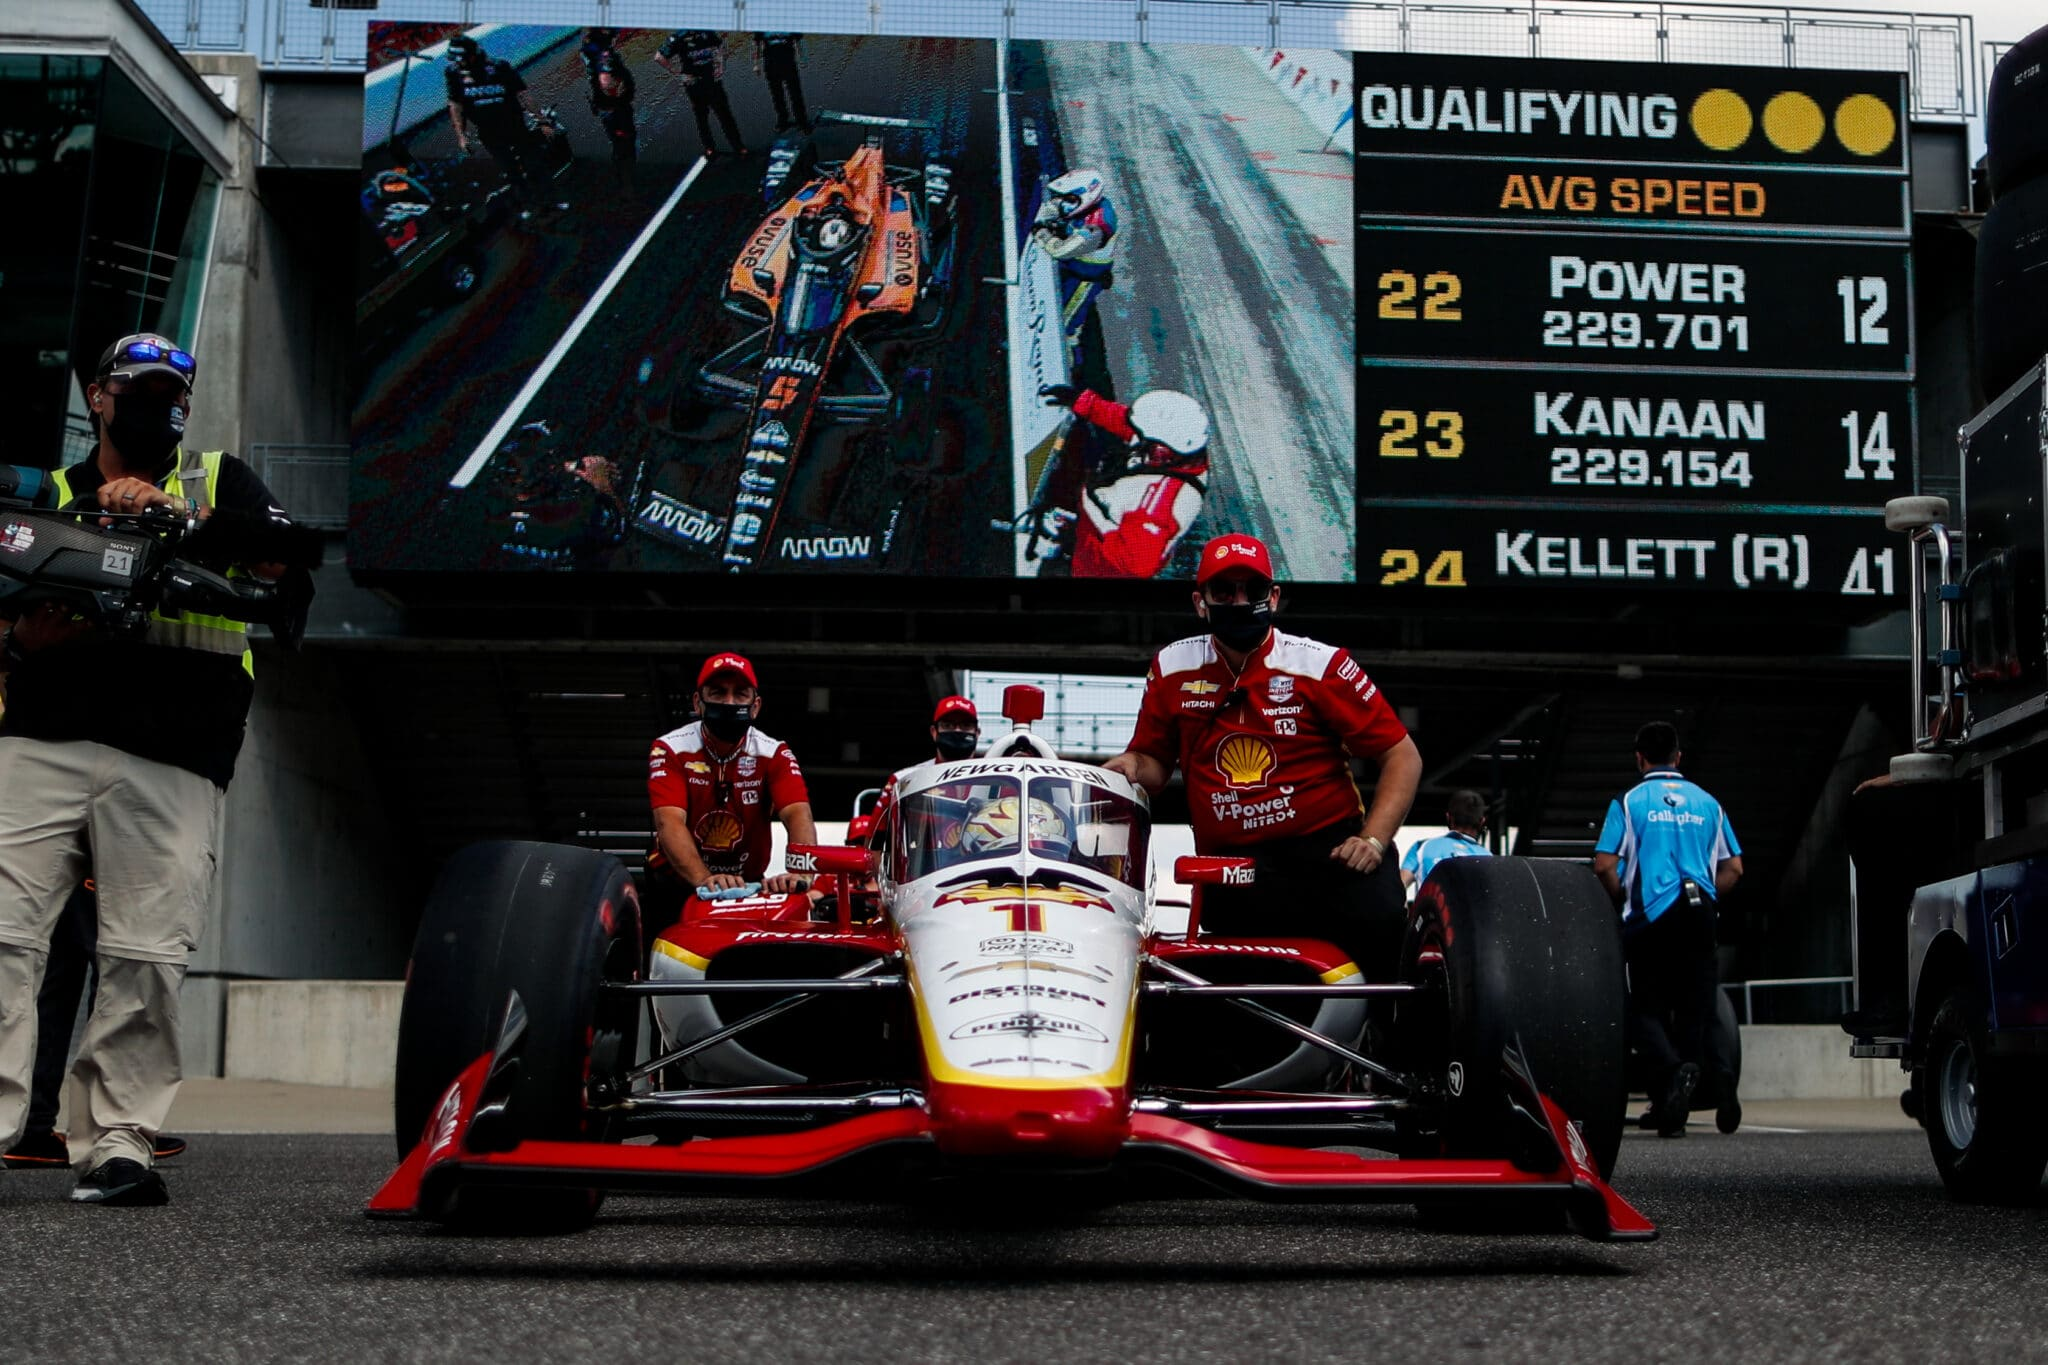 JGS 2020 INDIANAPOLIS 500 104129 1 scaled